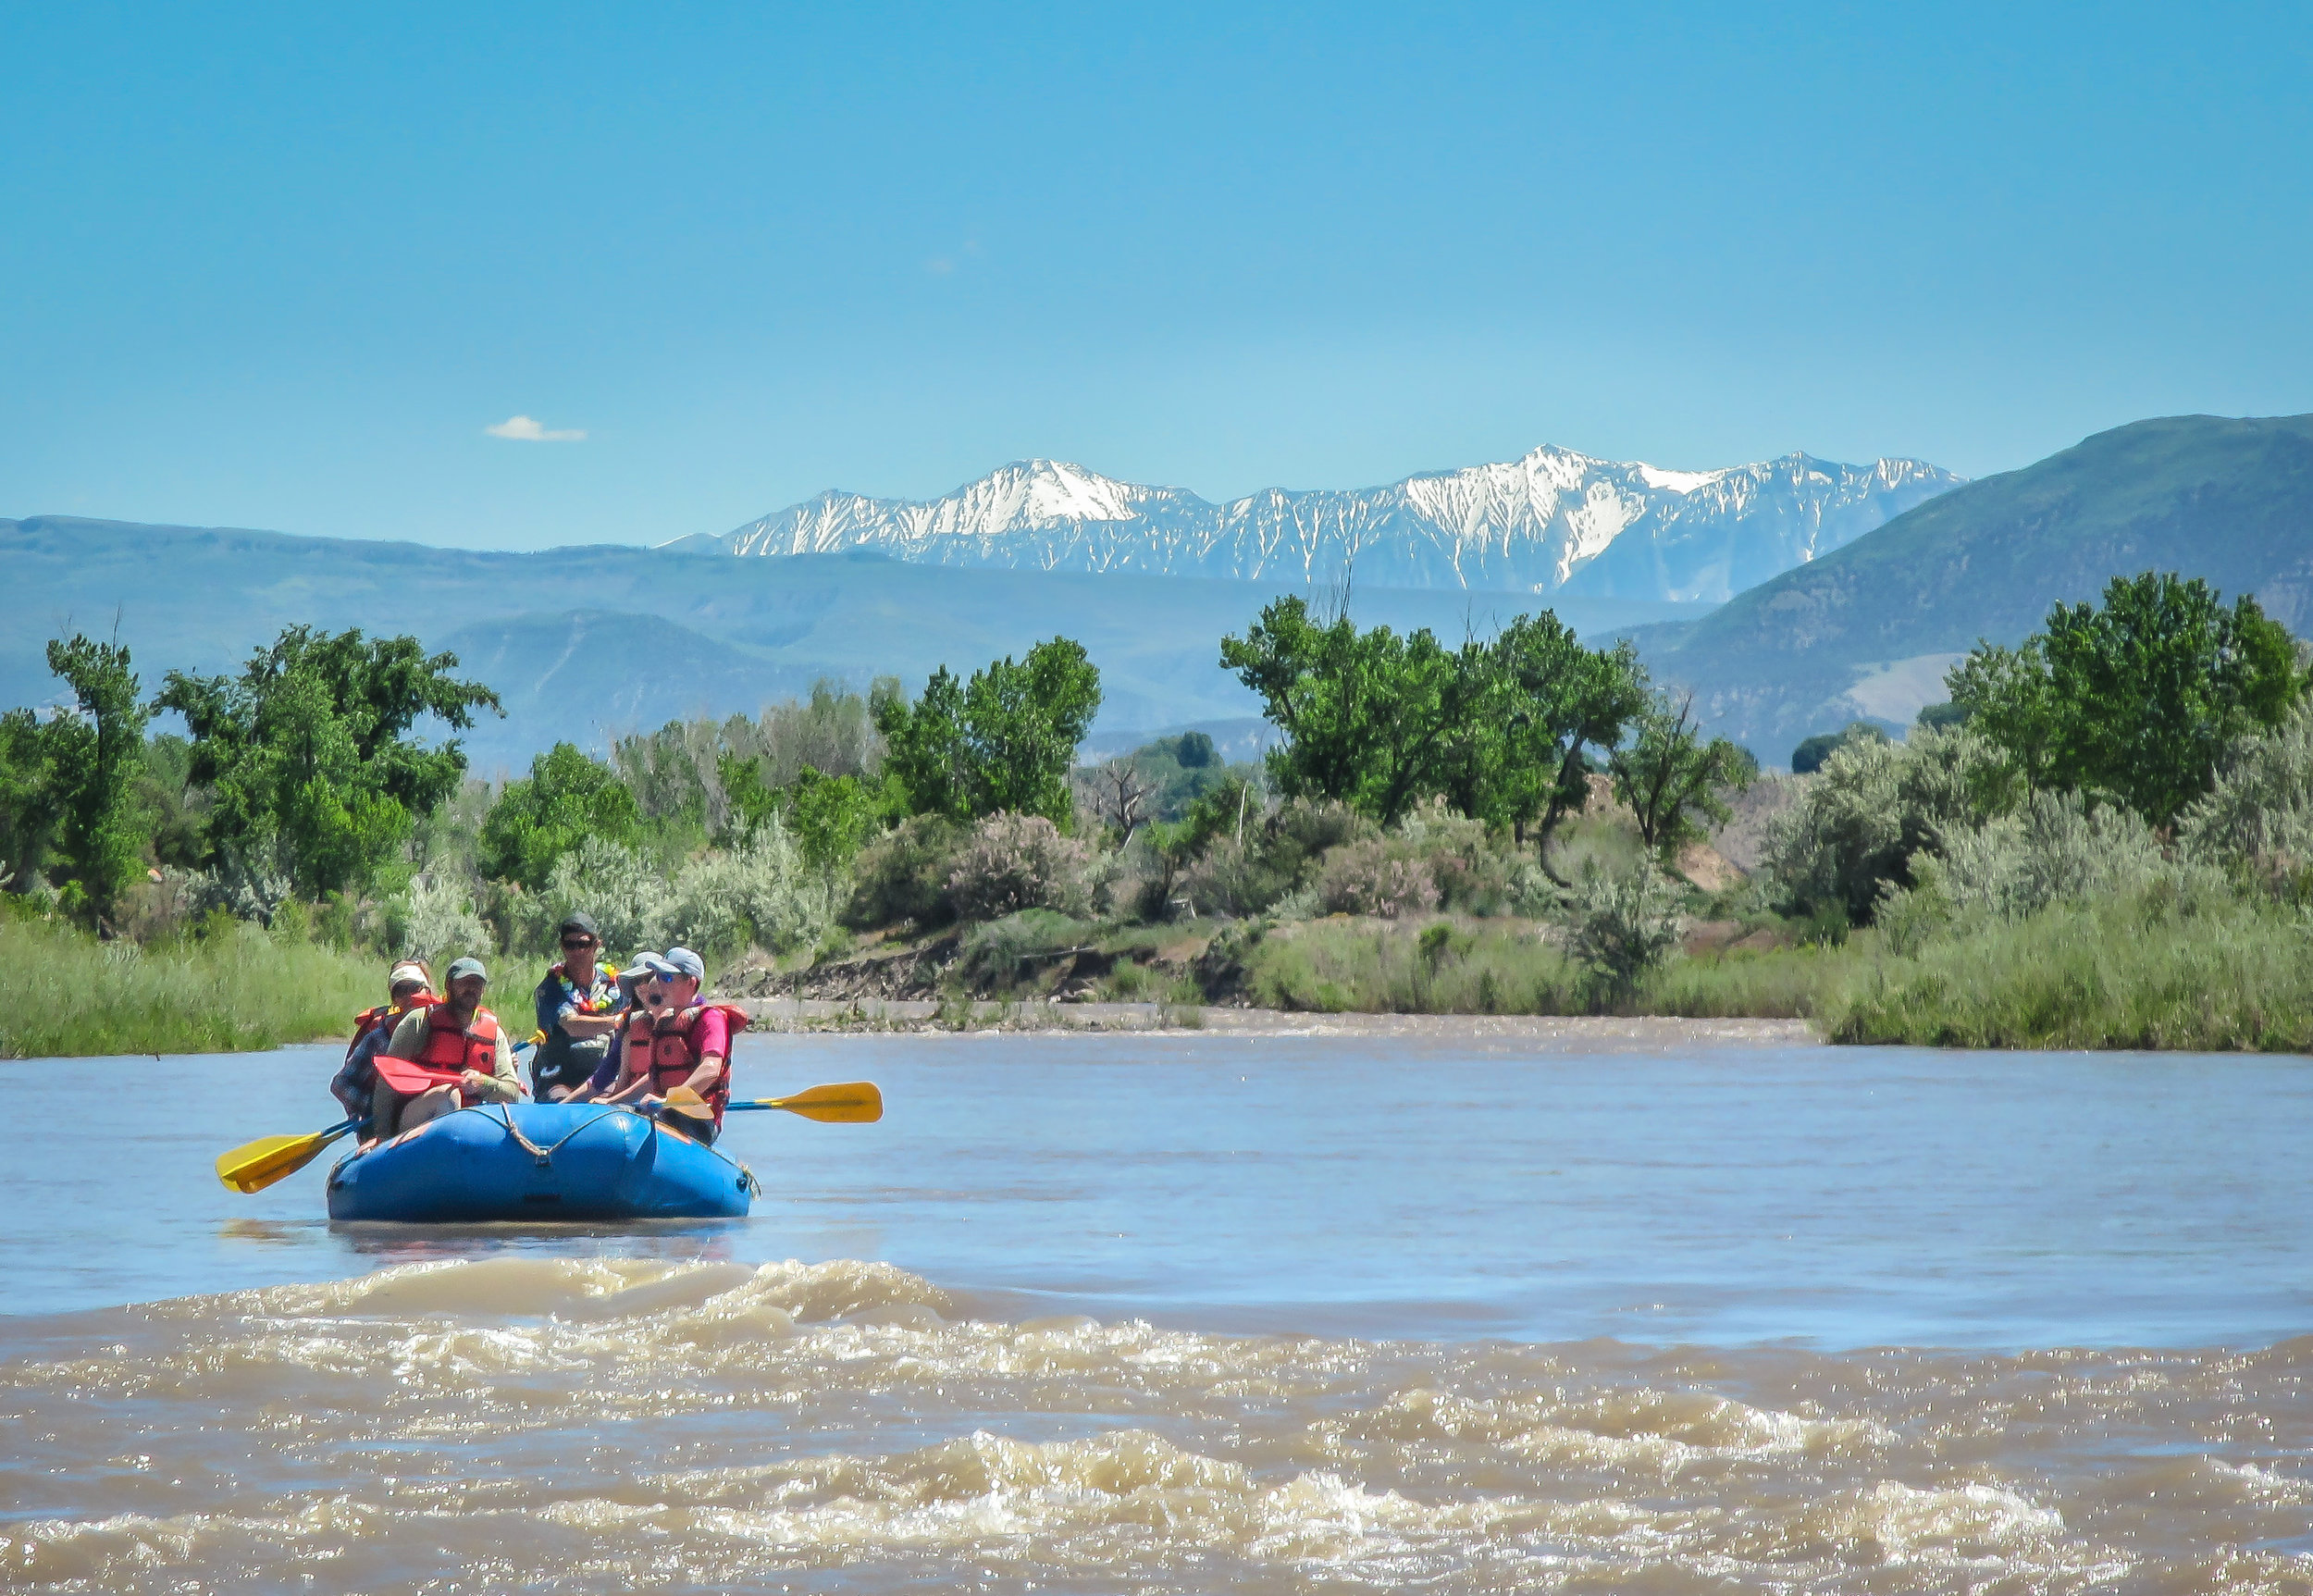 crawford-grand-junction-west-elks-river-rafting-stand-up-paddle-boarding-gunnison-river-colorado